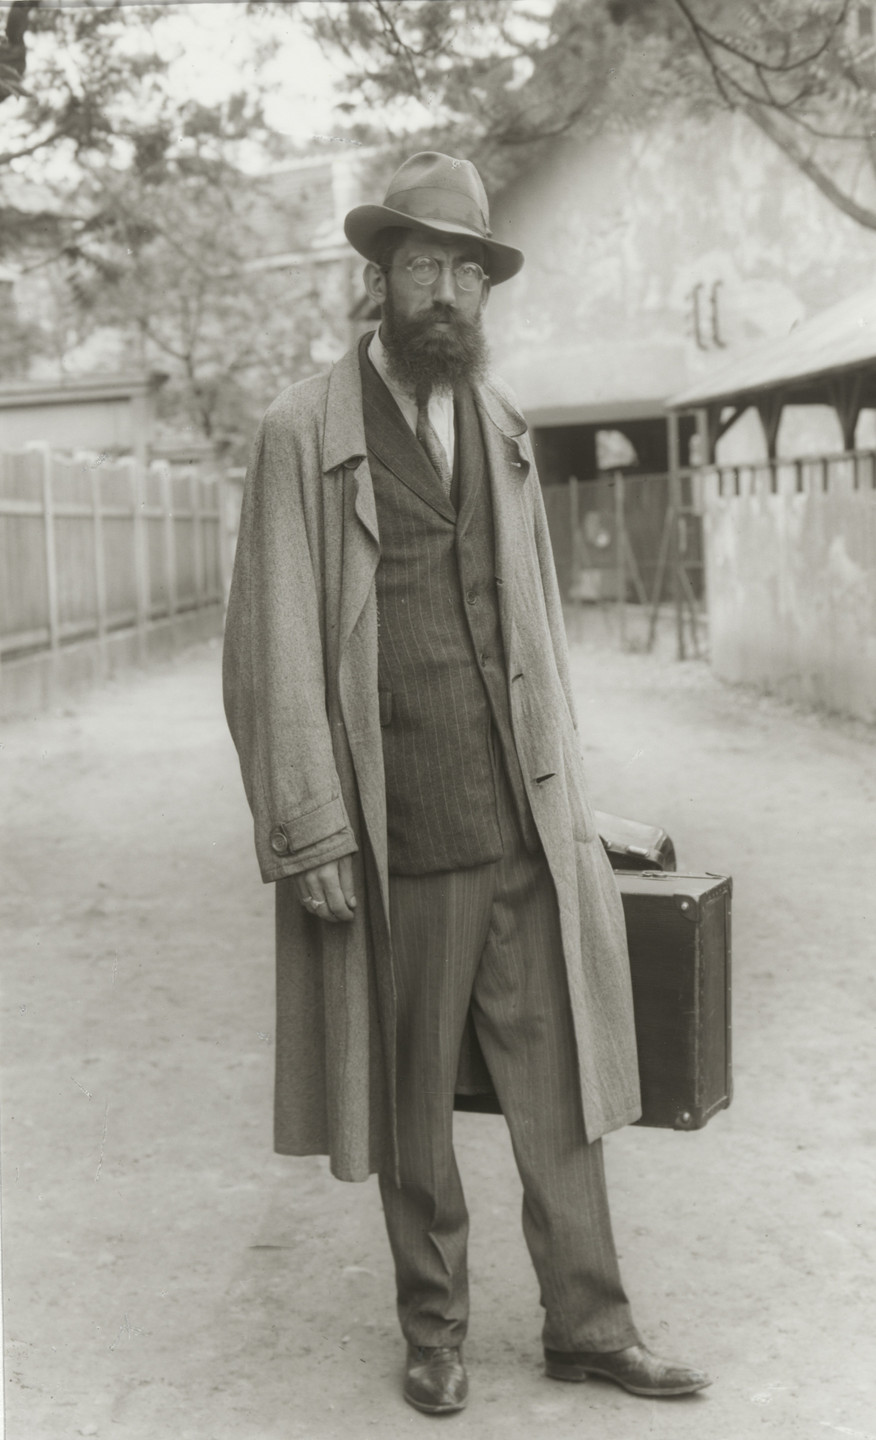 August Sander. Magician. 1930